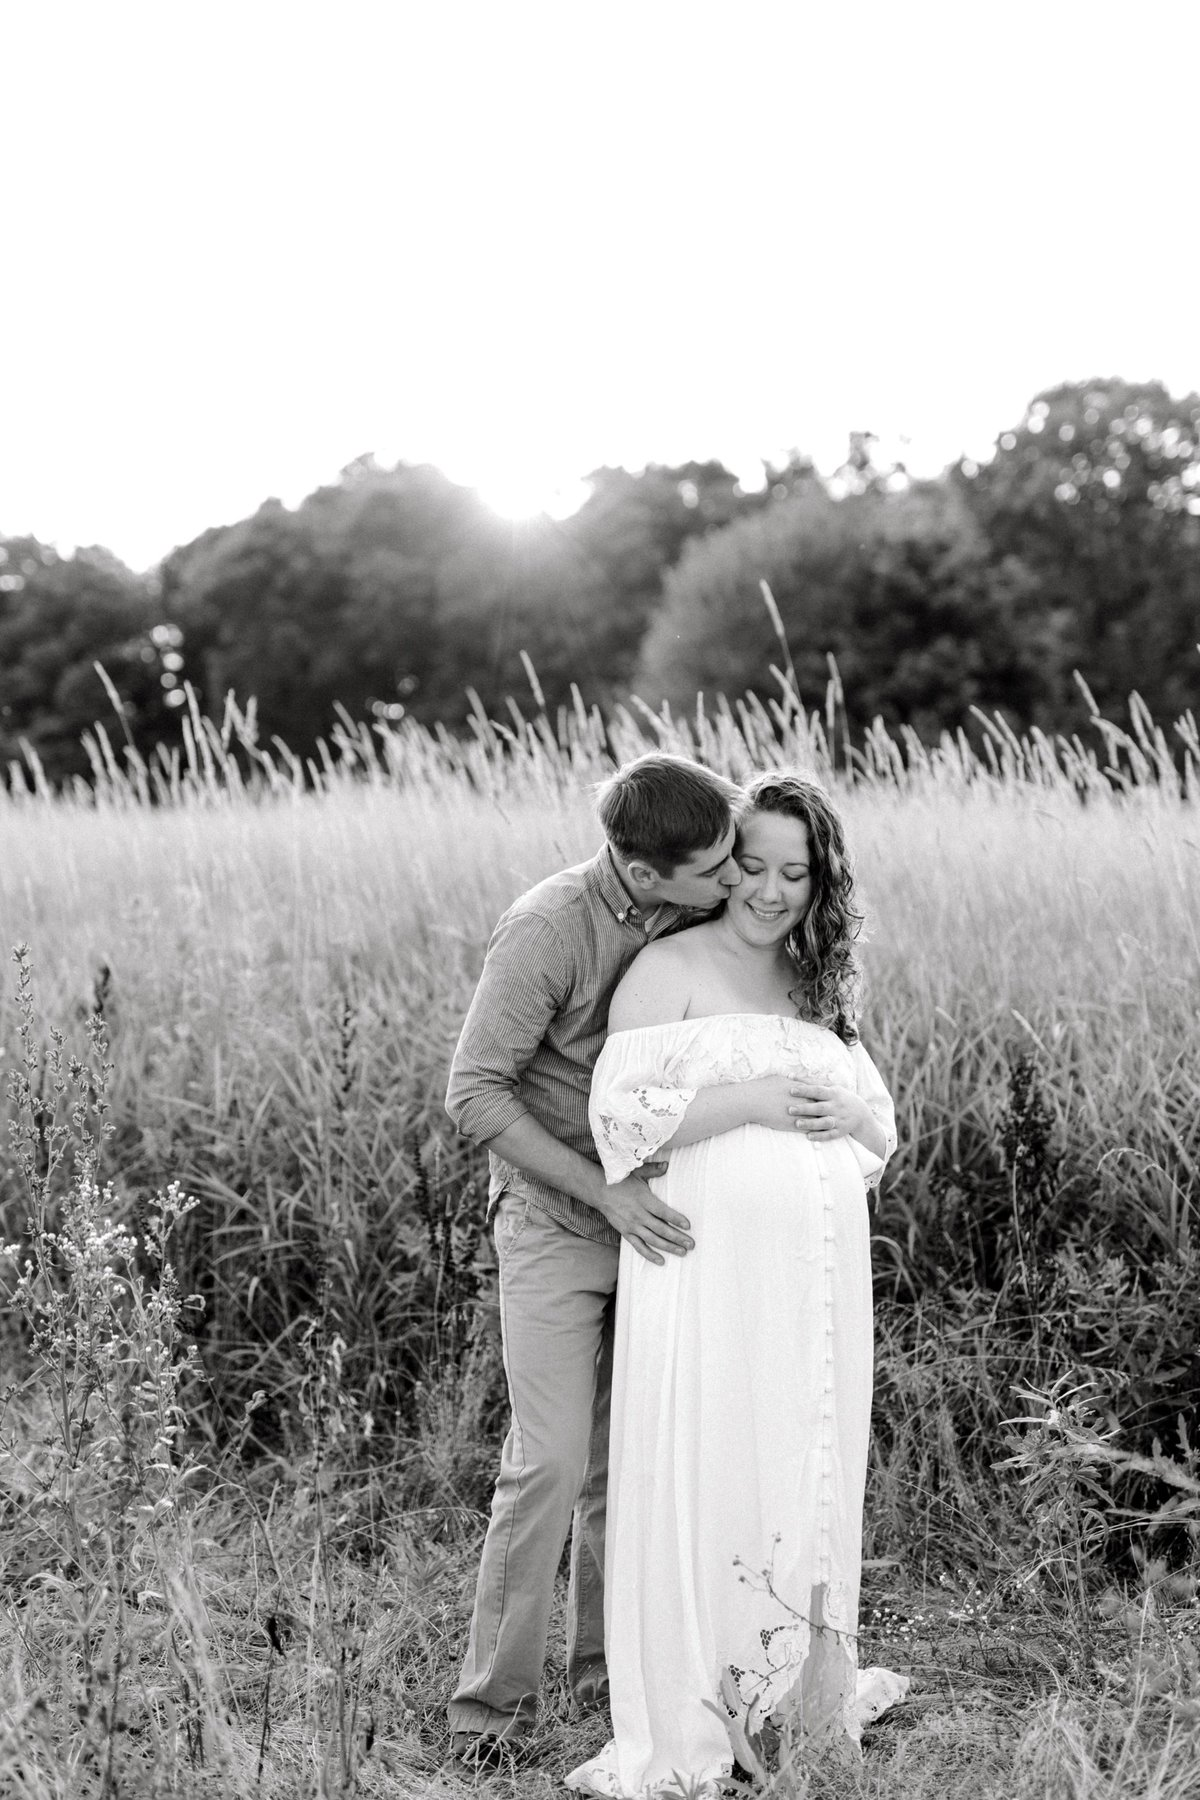 ETHEREAL SUMMER MATERNITY SESSION | MECHANICSBURG MATERNITY PHOTOGRAPHER_0995